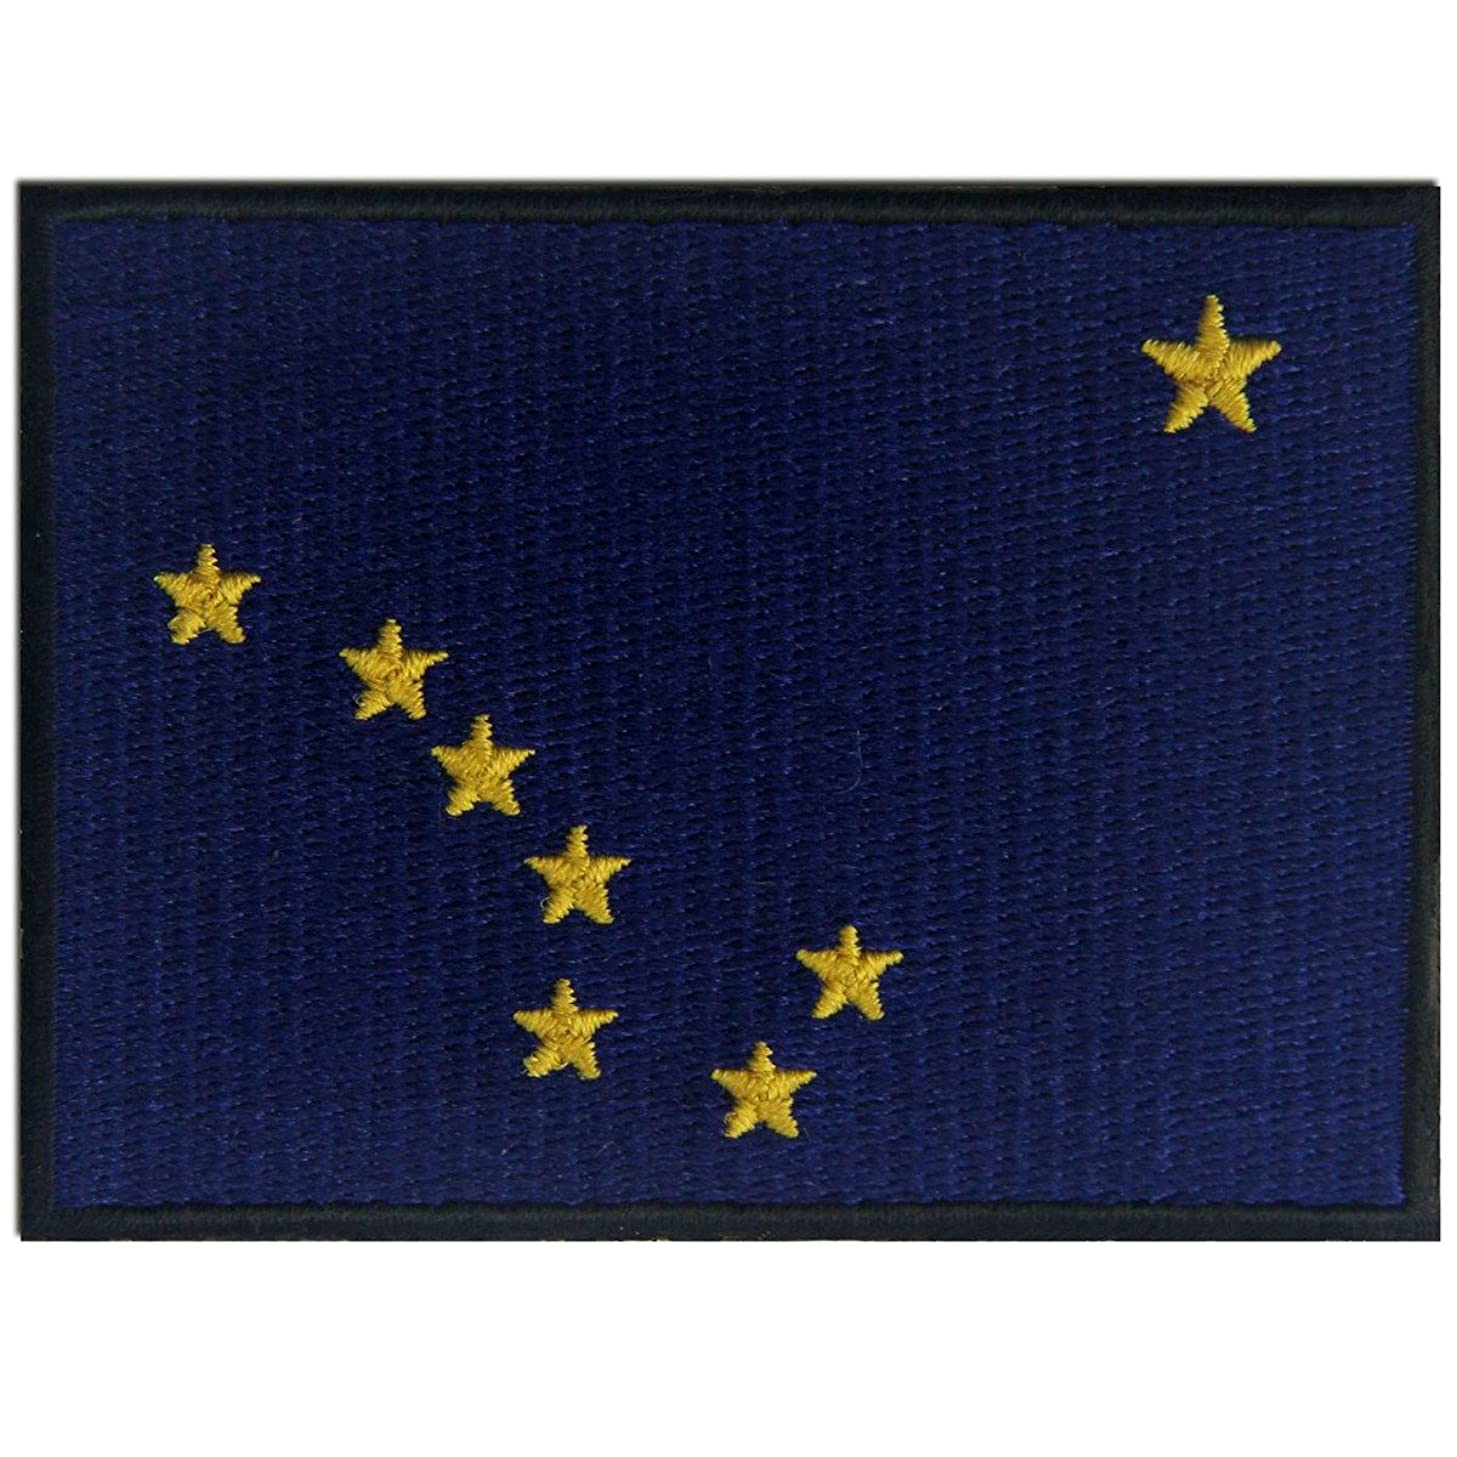 Alaska State Flag Embroidered Emblem Iron On Sew On AK Patch